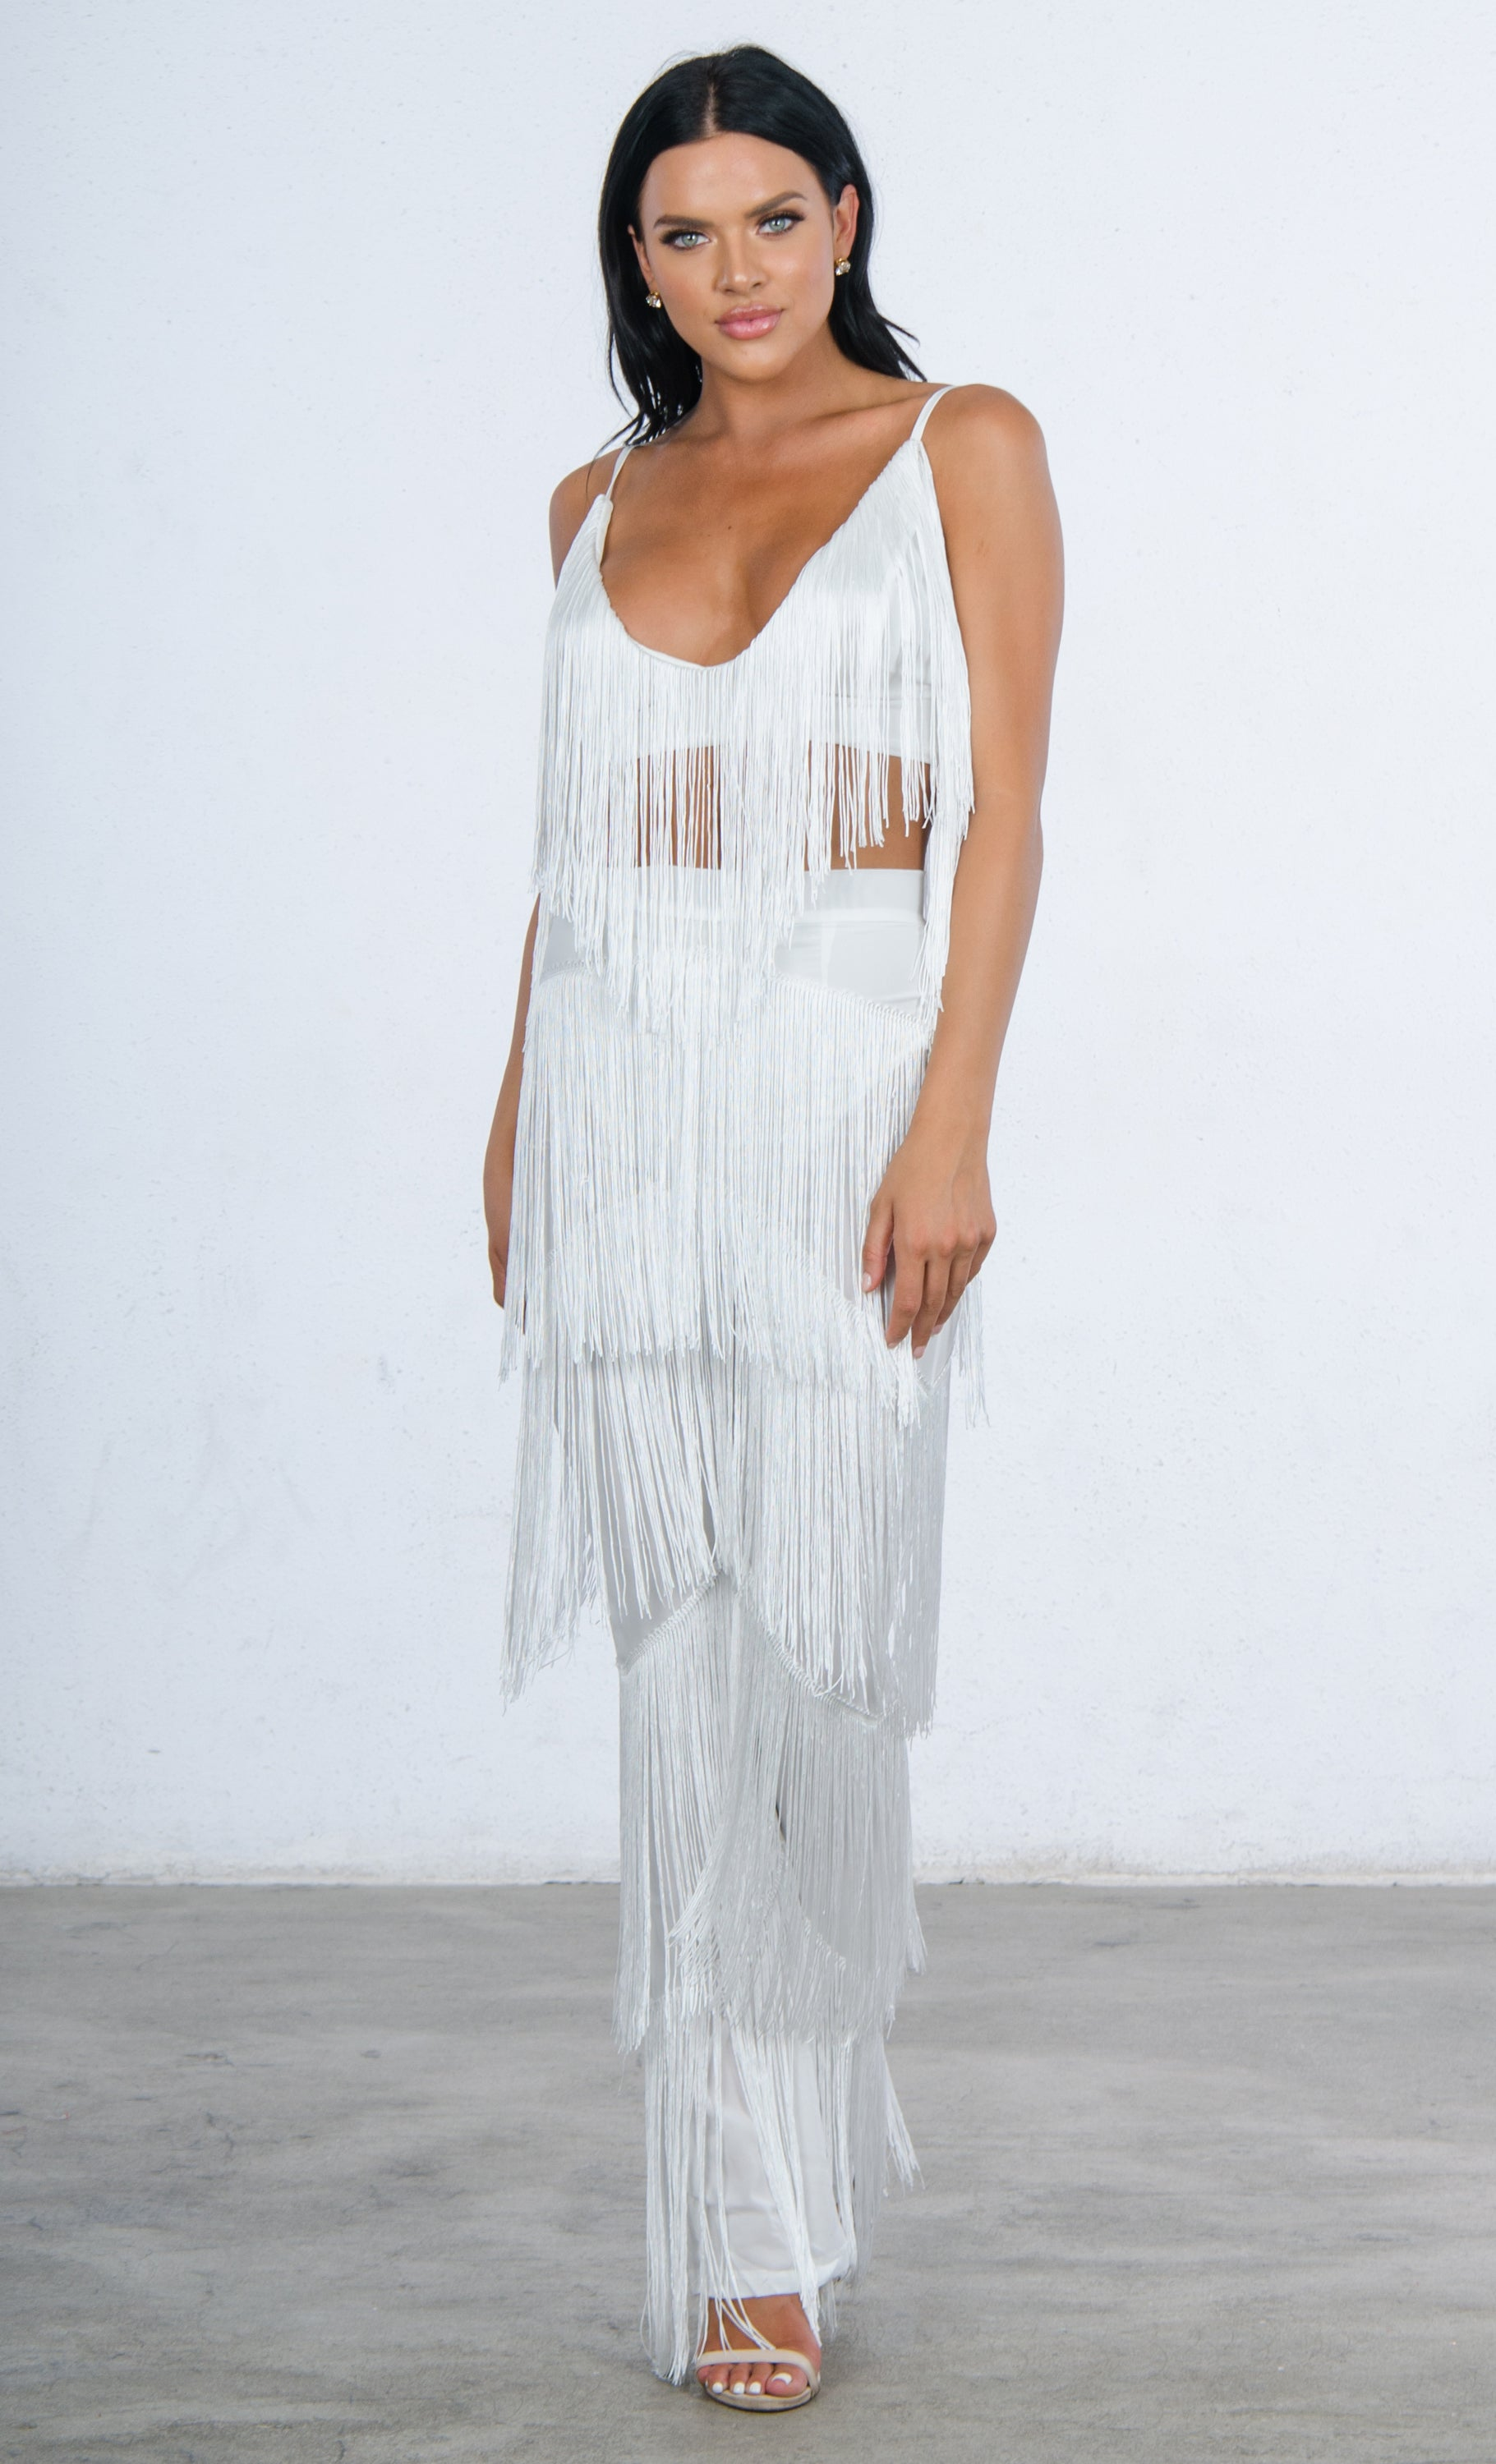 It's All About You Fringe Sleeveless Spaghetti Strap V Neck Crop Top Wide Leg Loose Jumpsuit Two Piece Set - 3 Colors Available